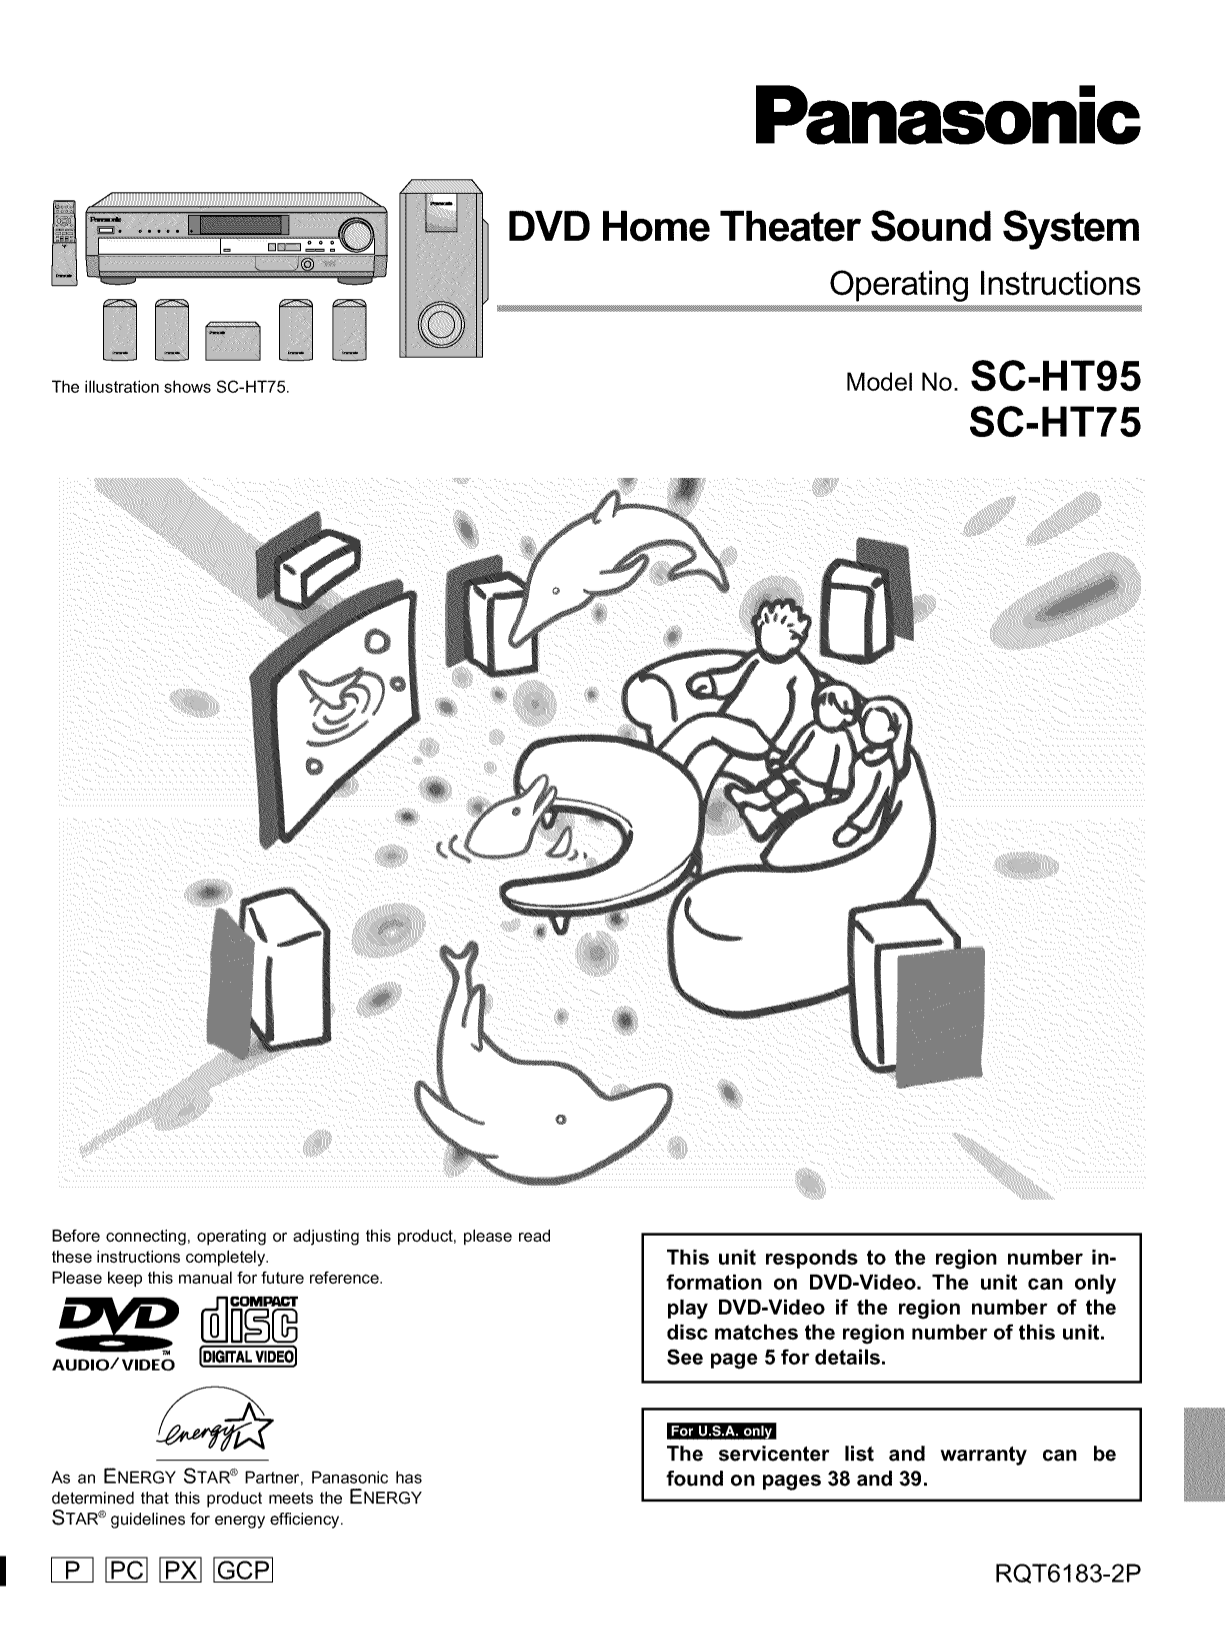 download free pdf for panasonic sa ht75 home theater manual rh umlib com panasonic dvd home theater sound system sa-ht 75 manual panasonic sc-ht75 service manual